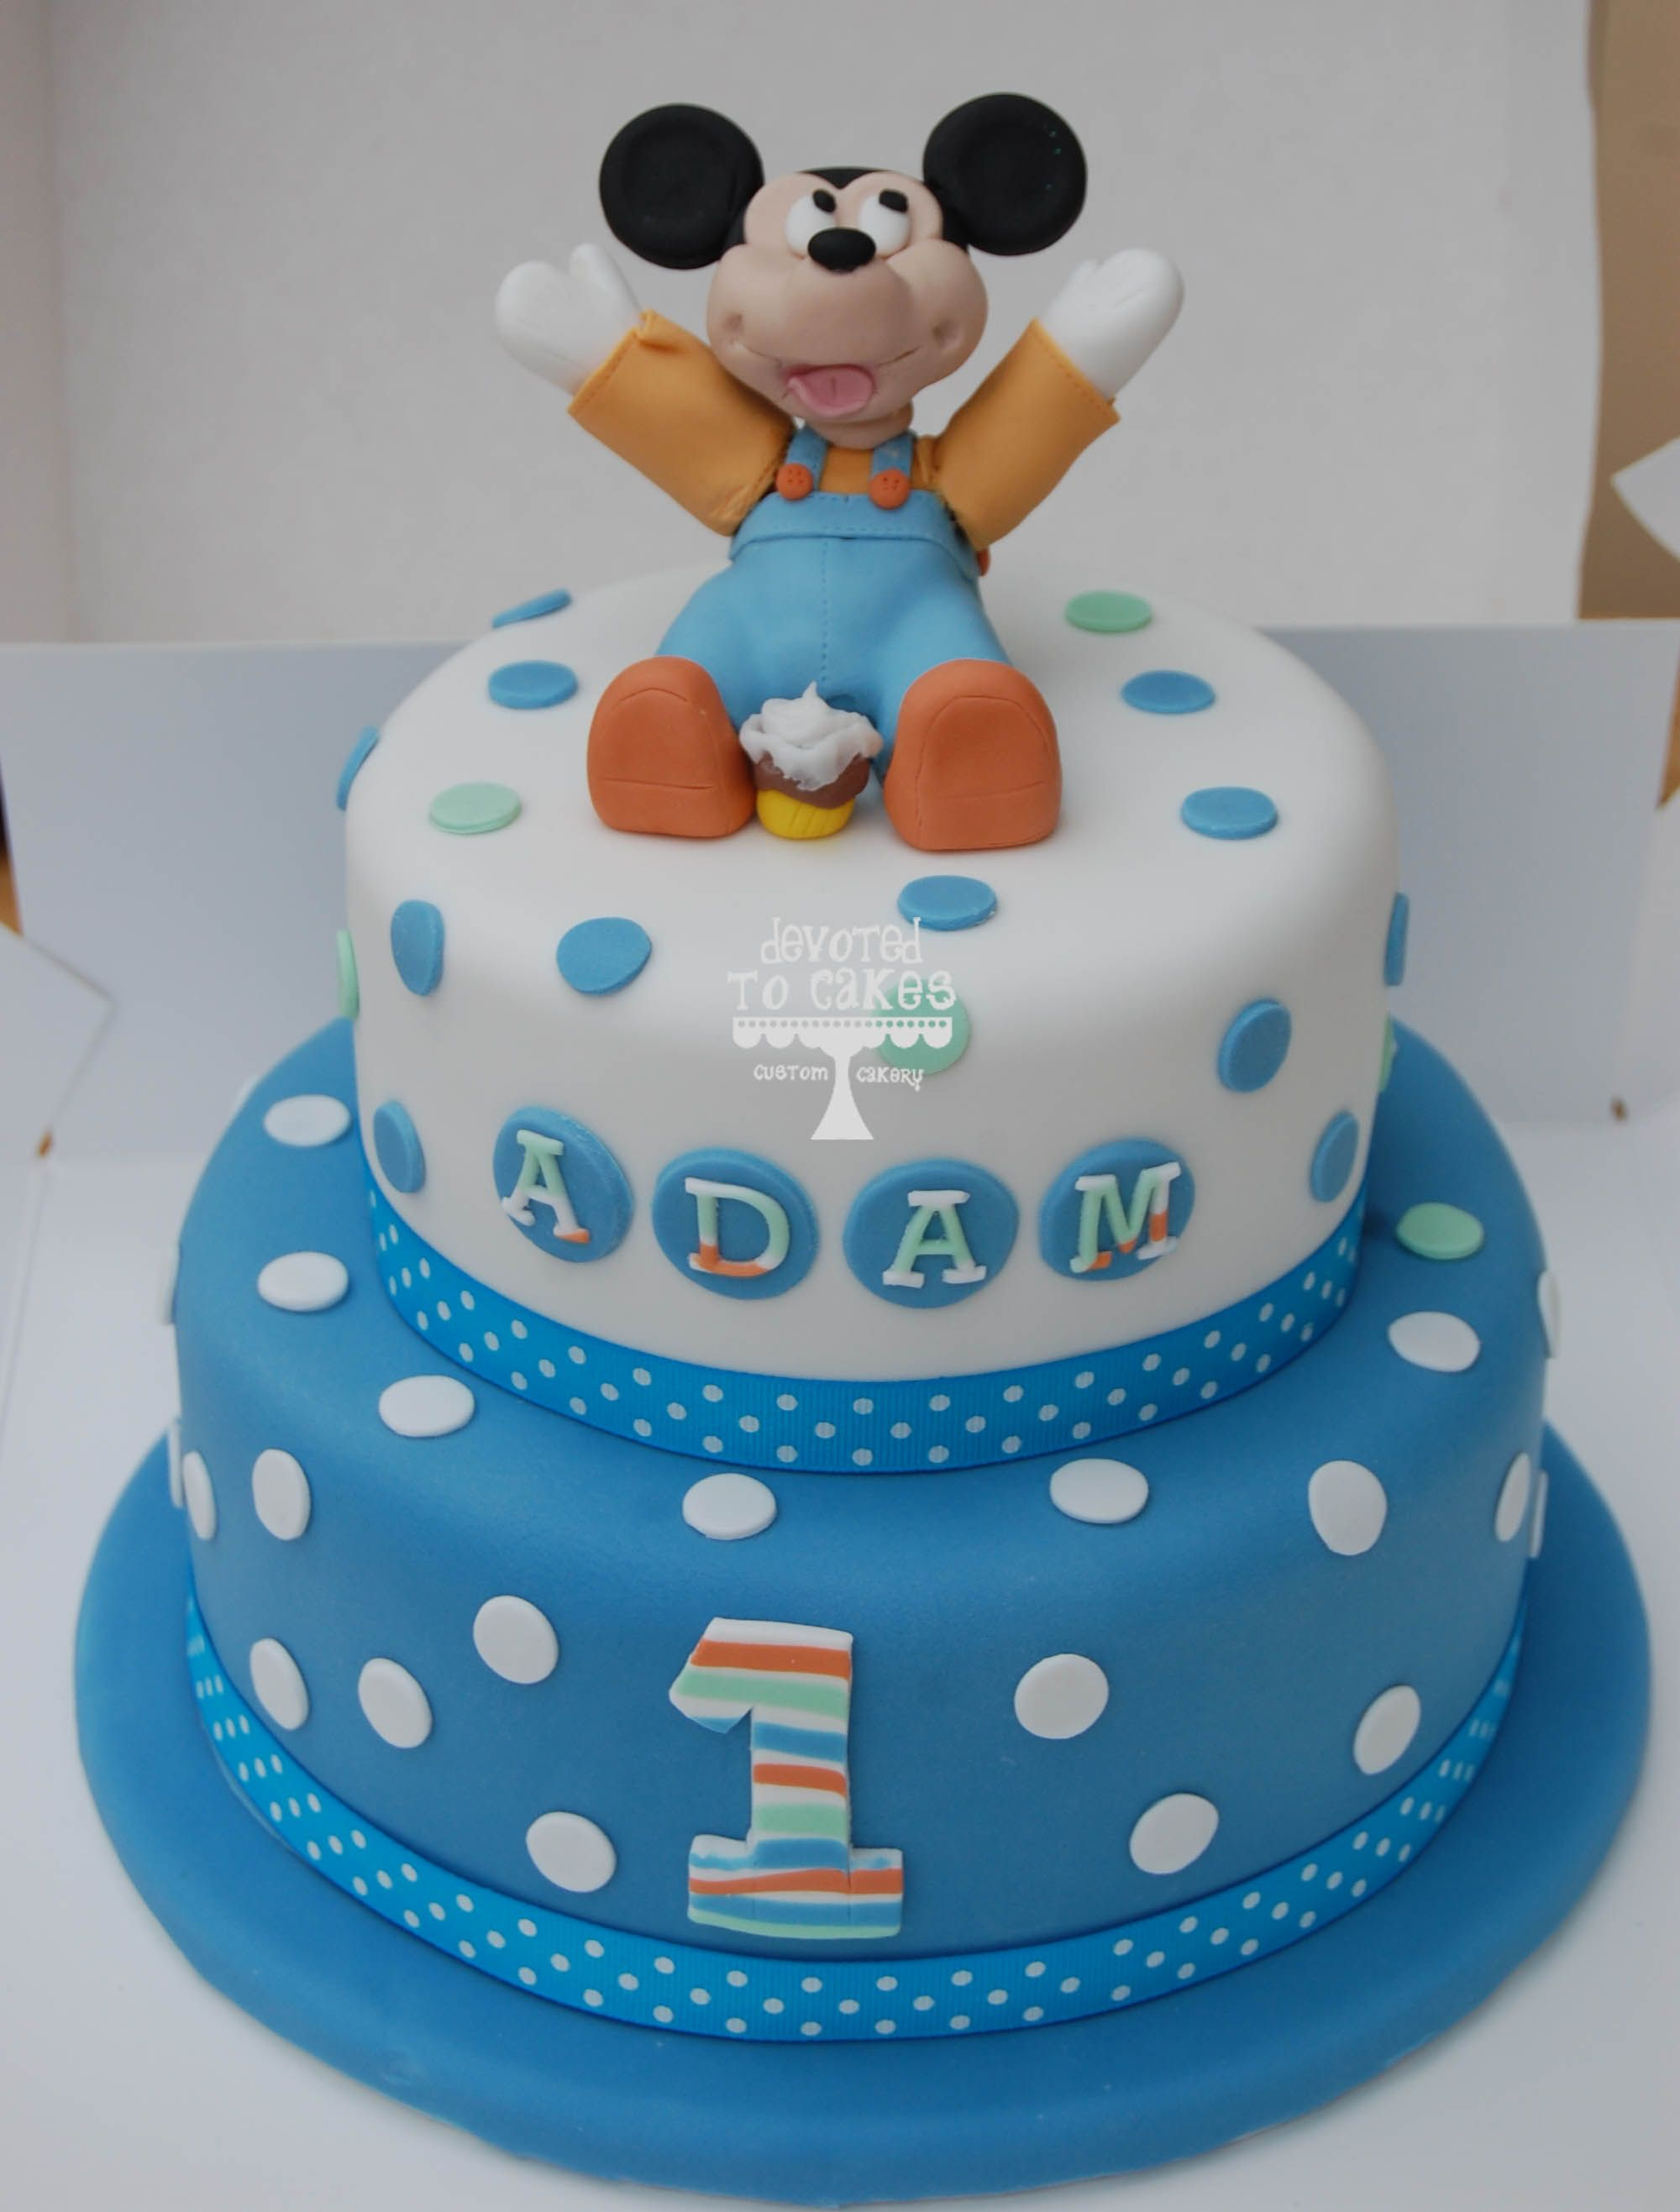 Baby Mickey Mouse Cake 8 X 6 Devoted To Cakes Cartoon Drawings